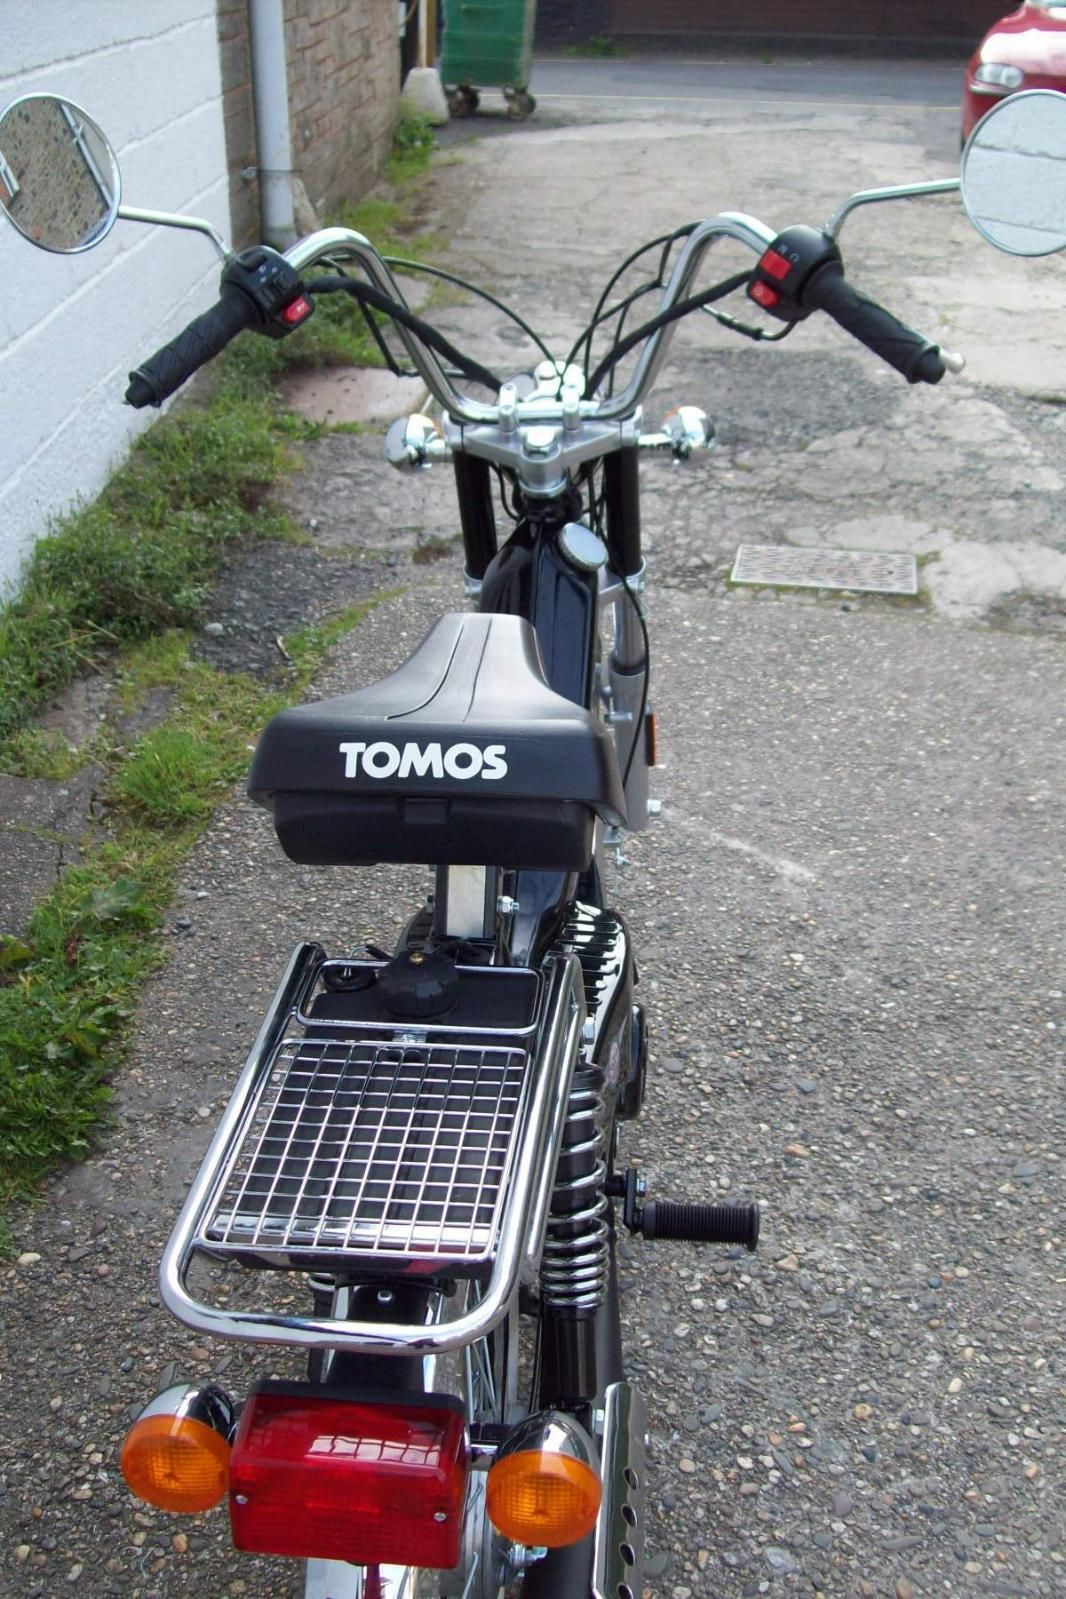 how to make tomos moped go faster